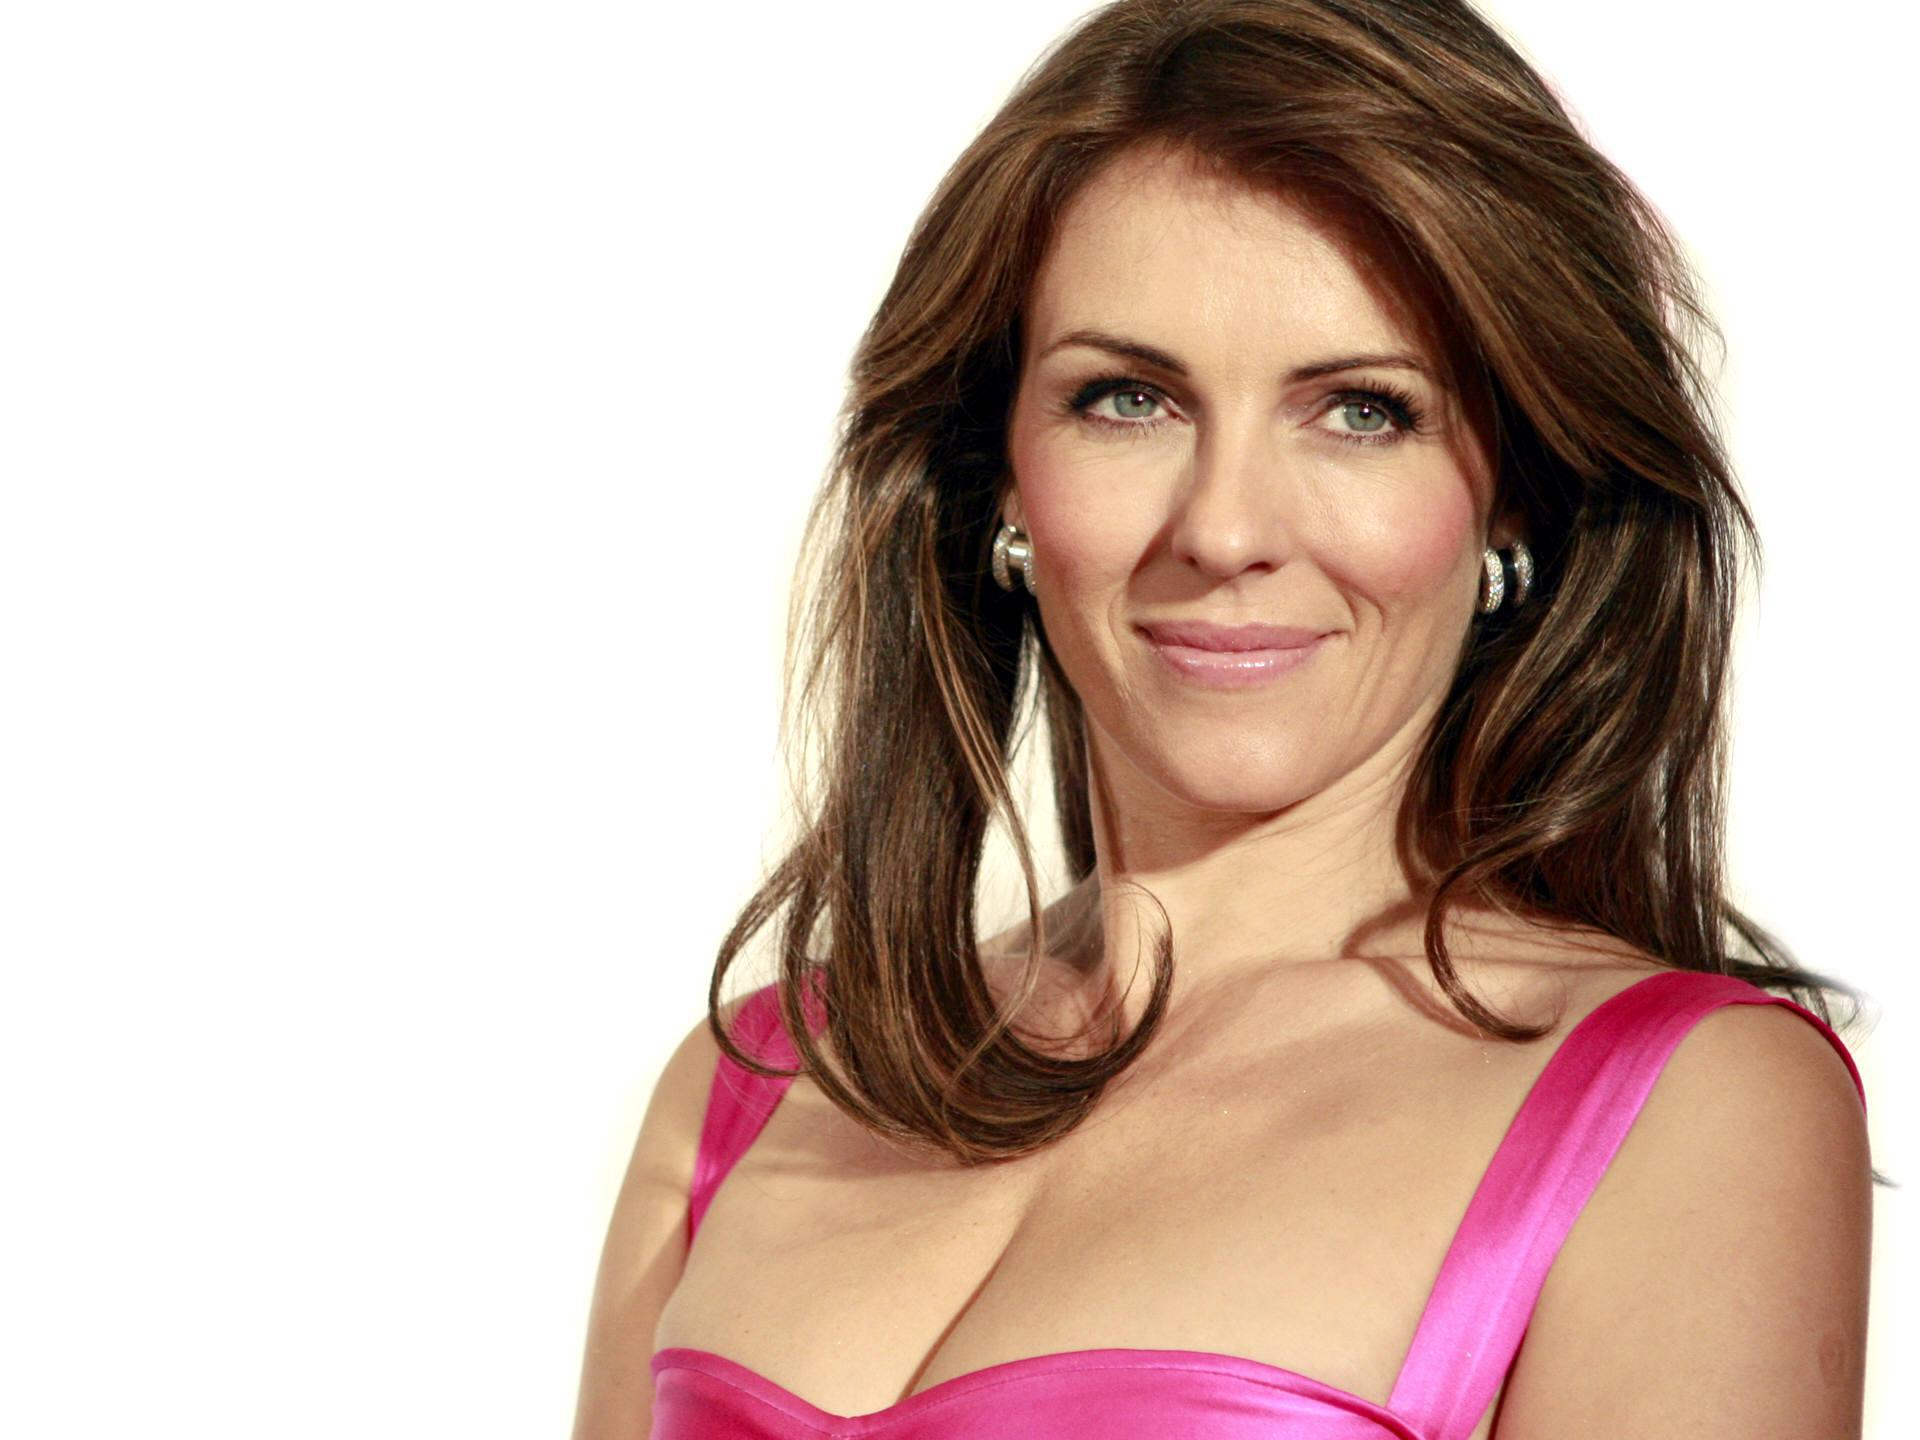 Elizabeth Hurley Wallpapers Images Photos Pictures Backgrounds